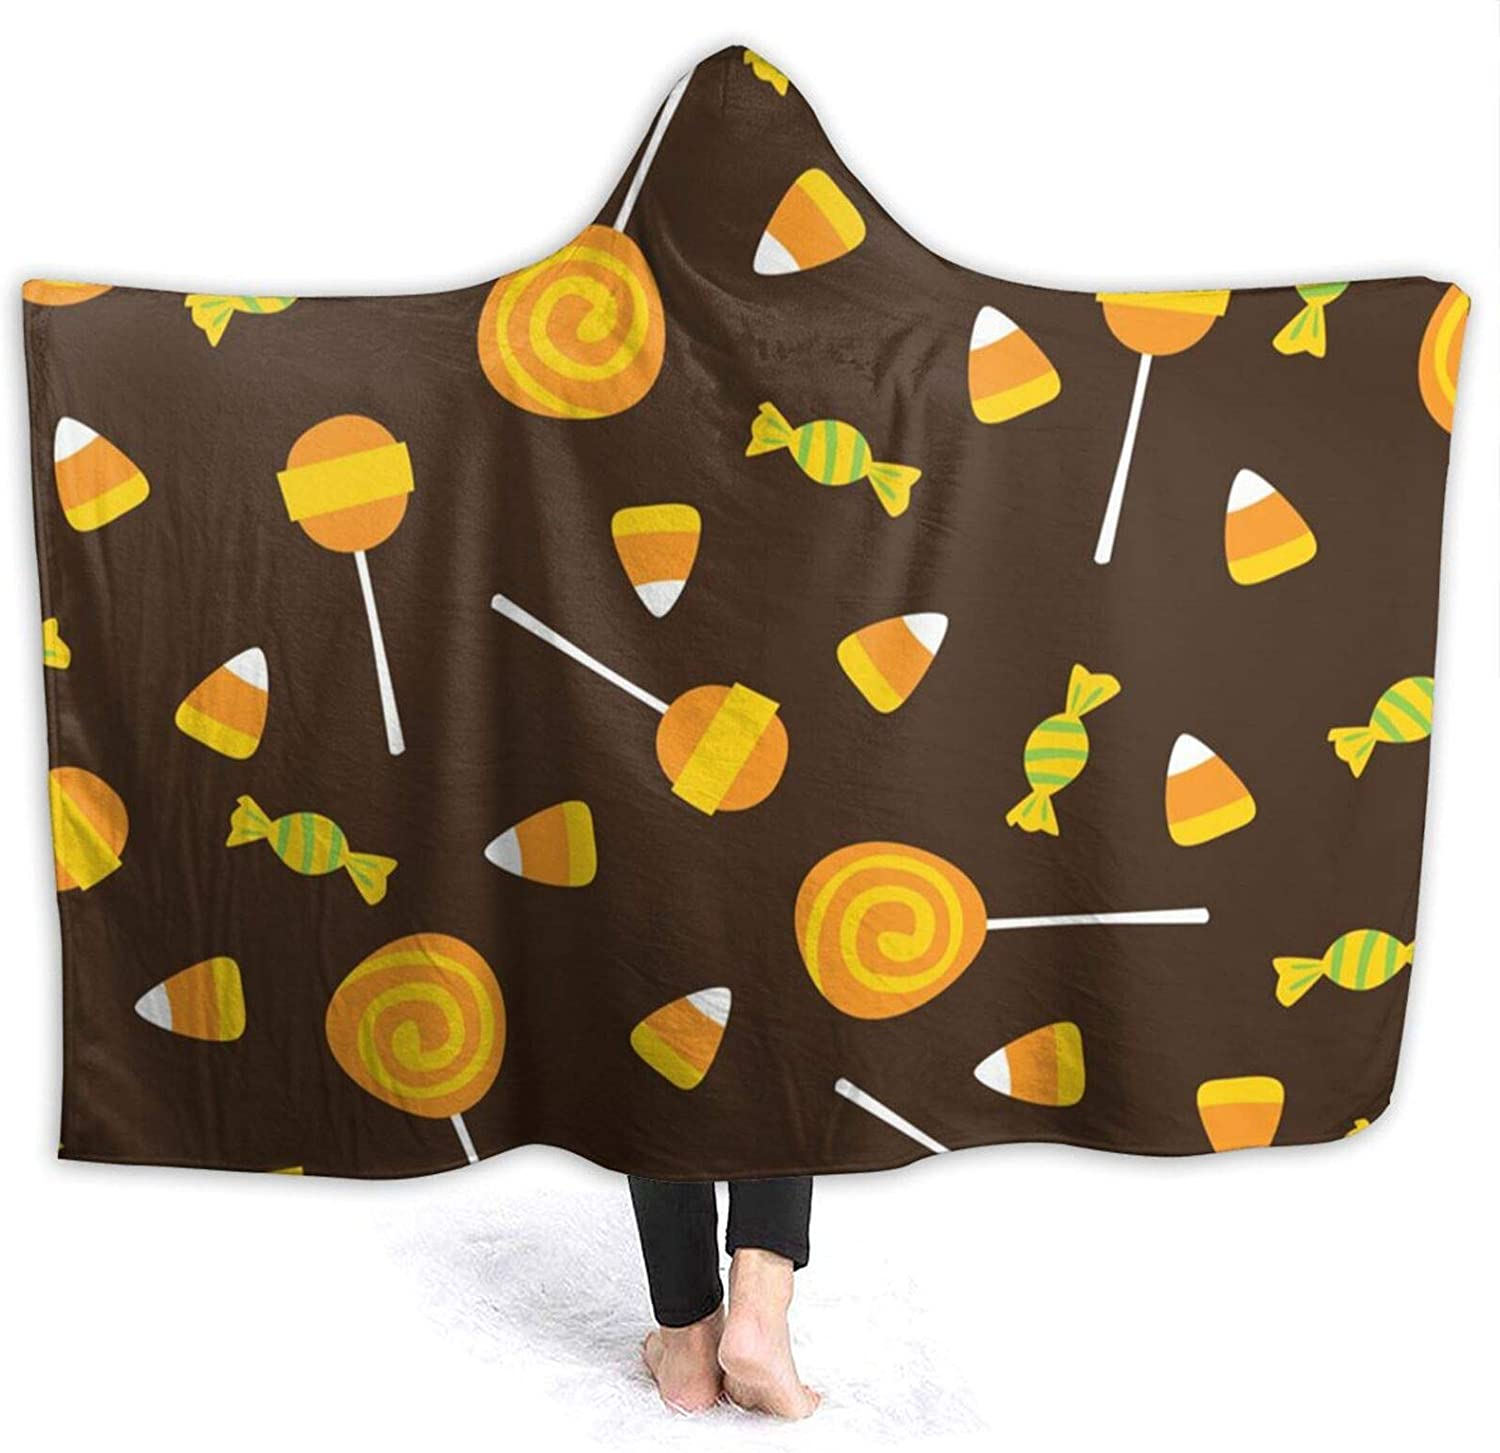 Halloween Max 52% OFF Manufacturer direct delivery Candy Wearable Blanket Throw Stylish for Sofa